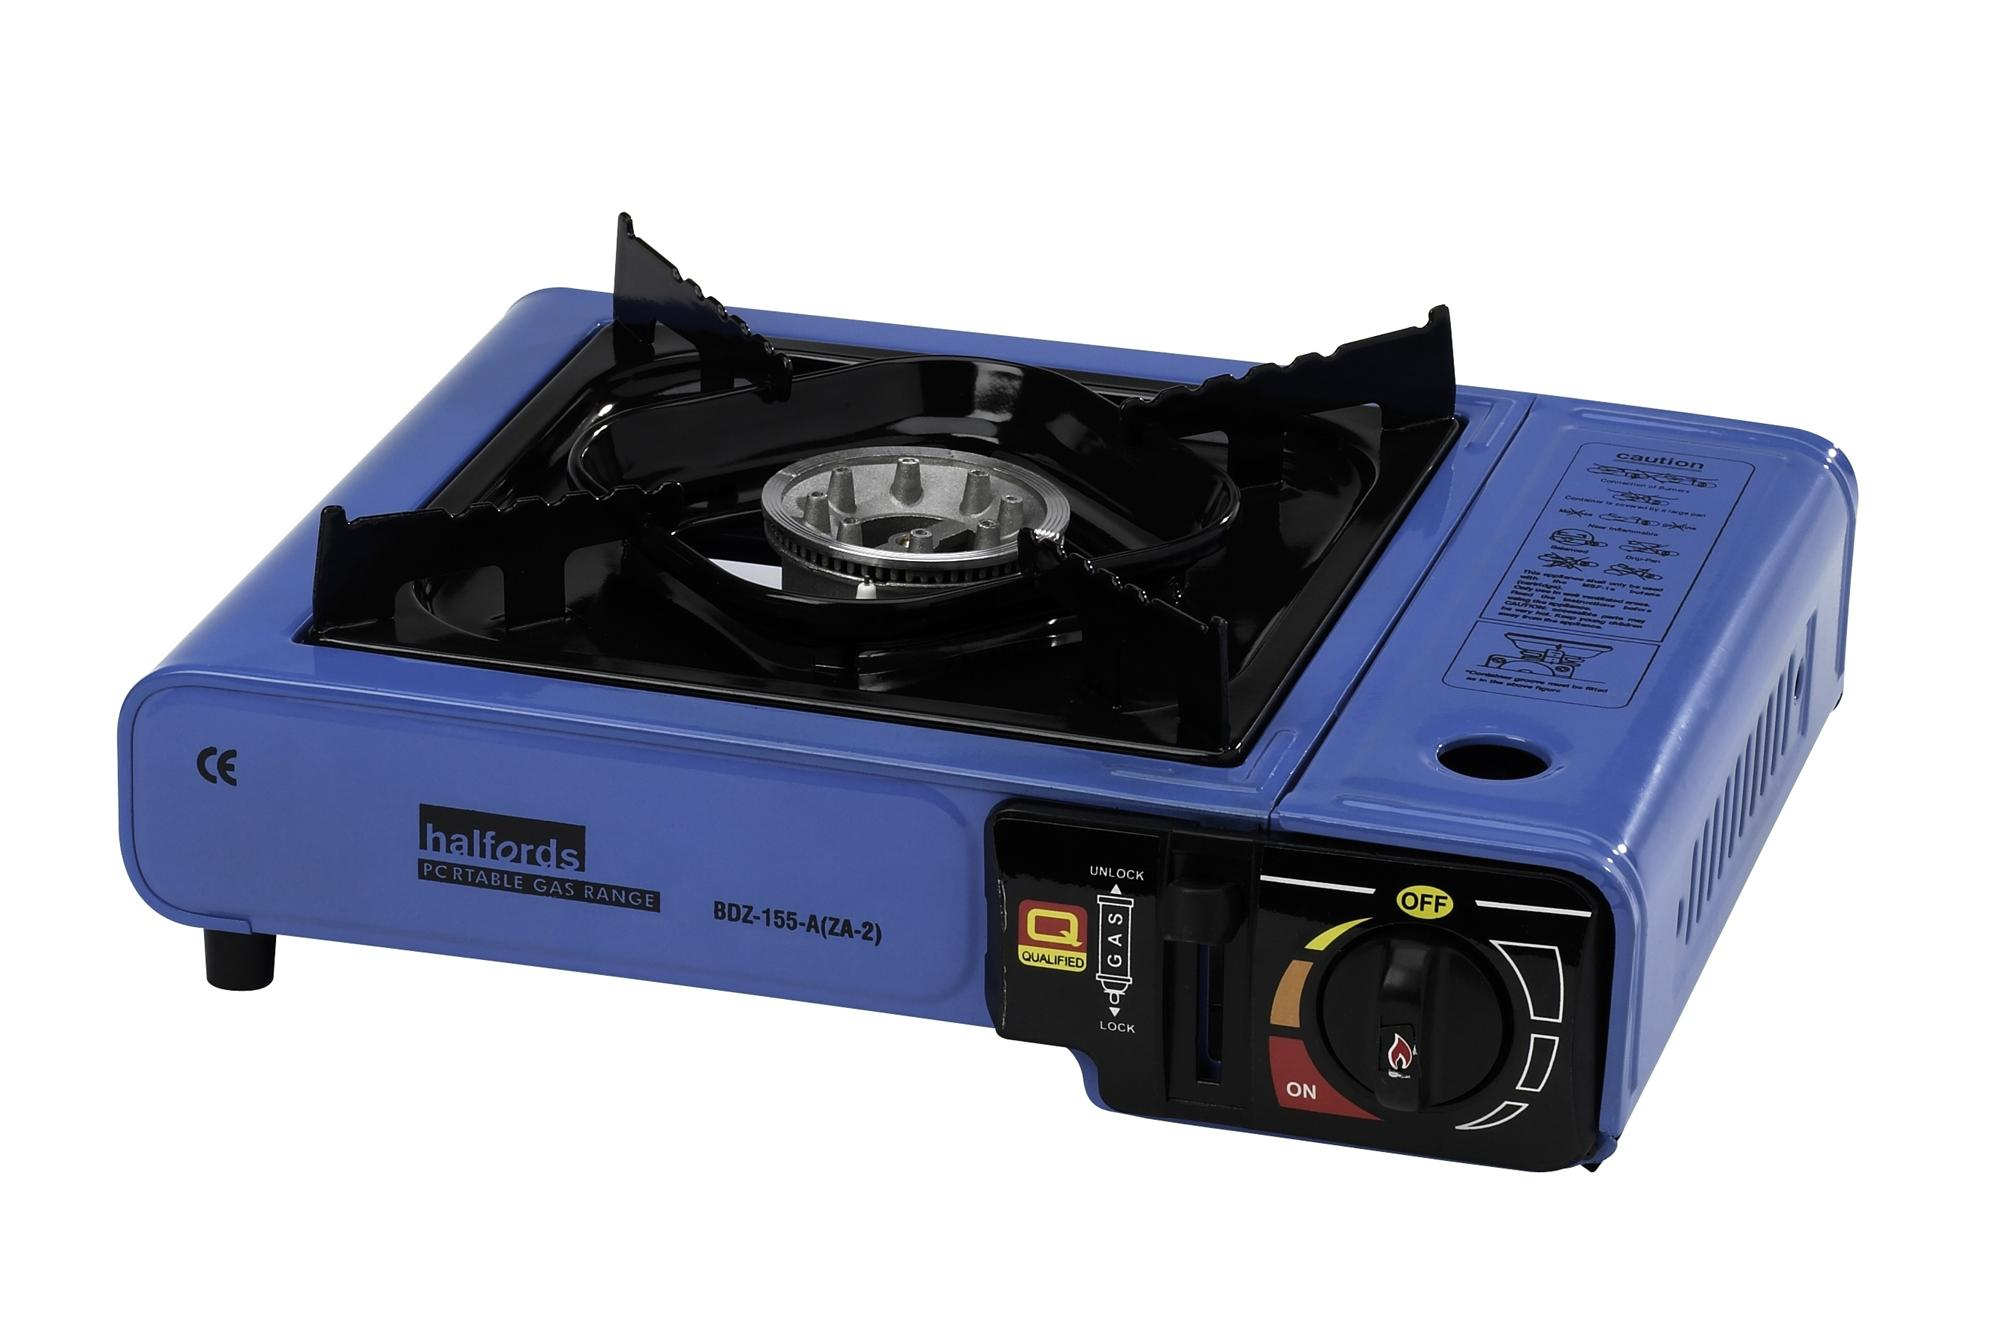 halfords portable single ring gas stove outdoor camping. Black Bedroom Furniture Sets. Home Design Ideas